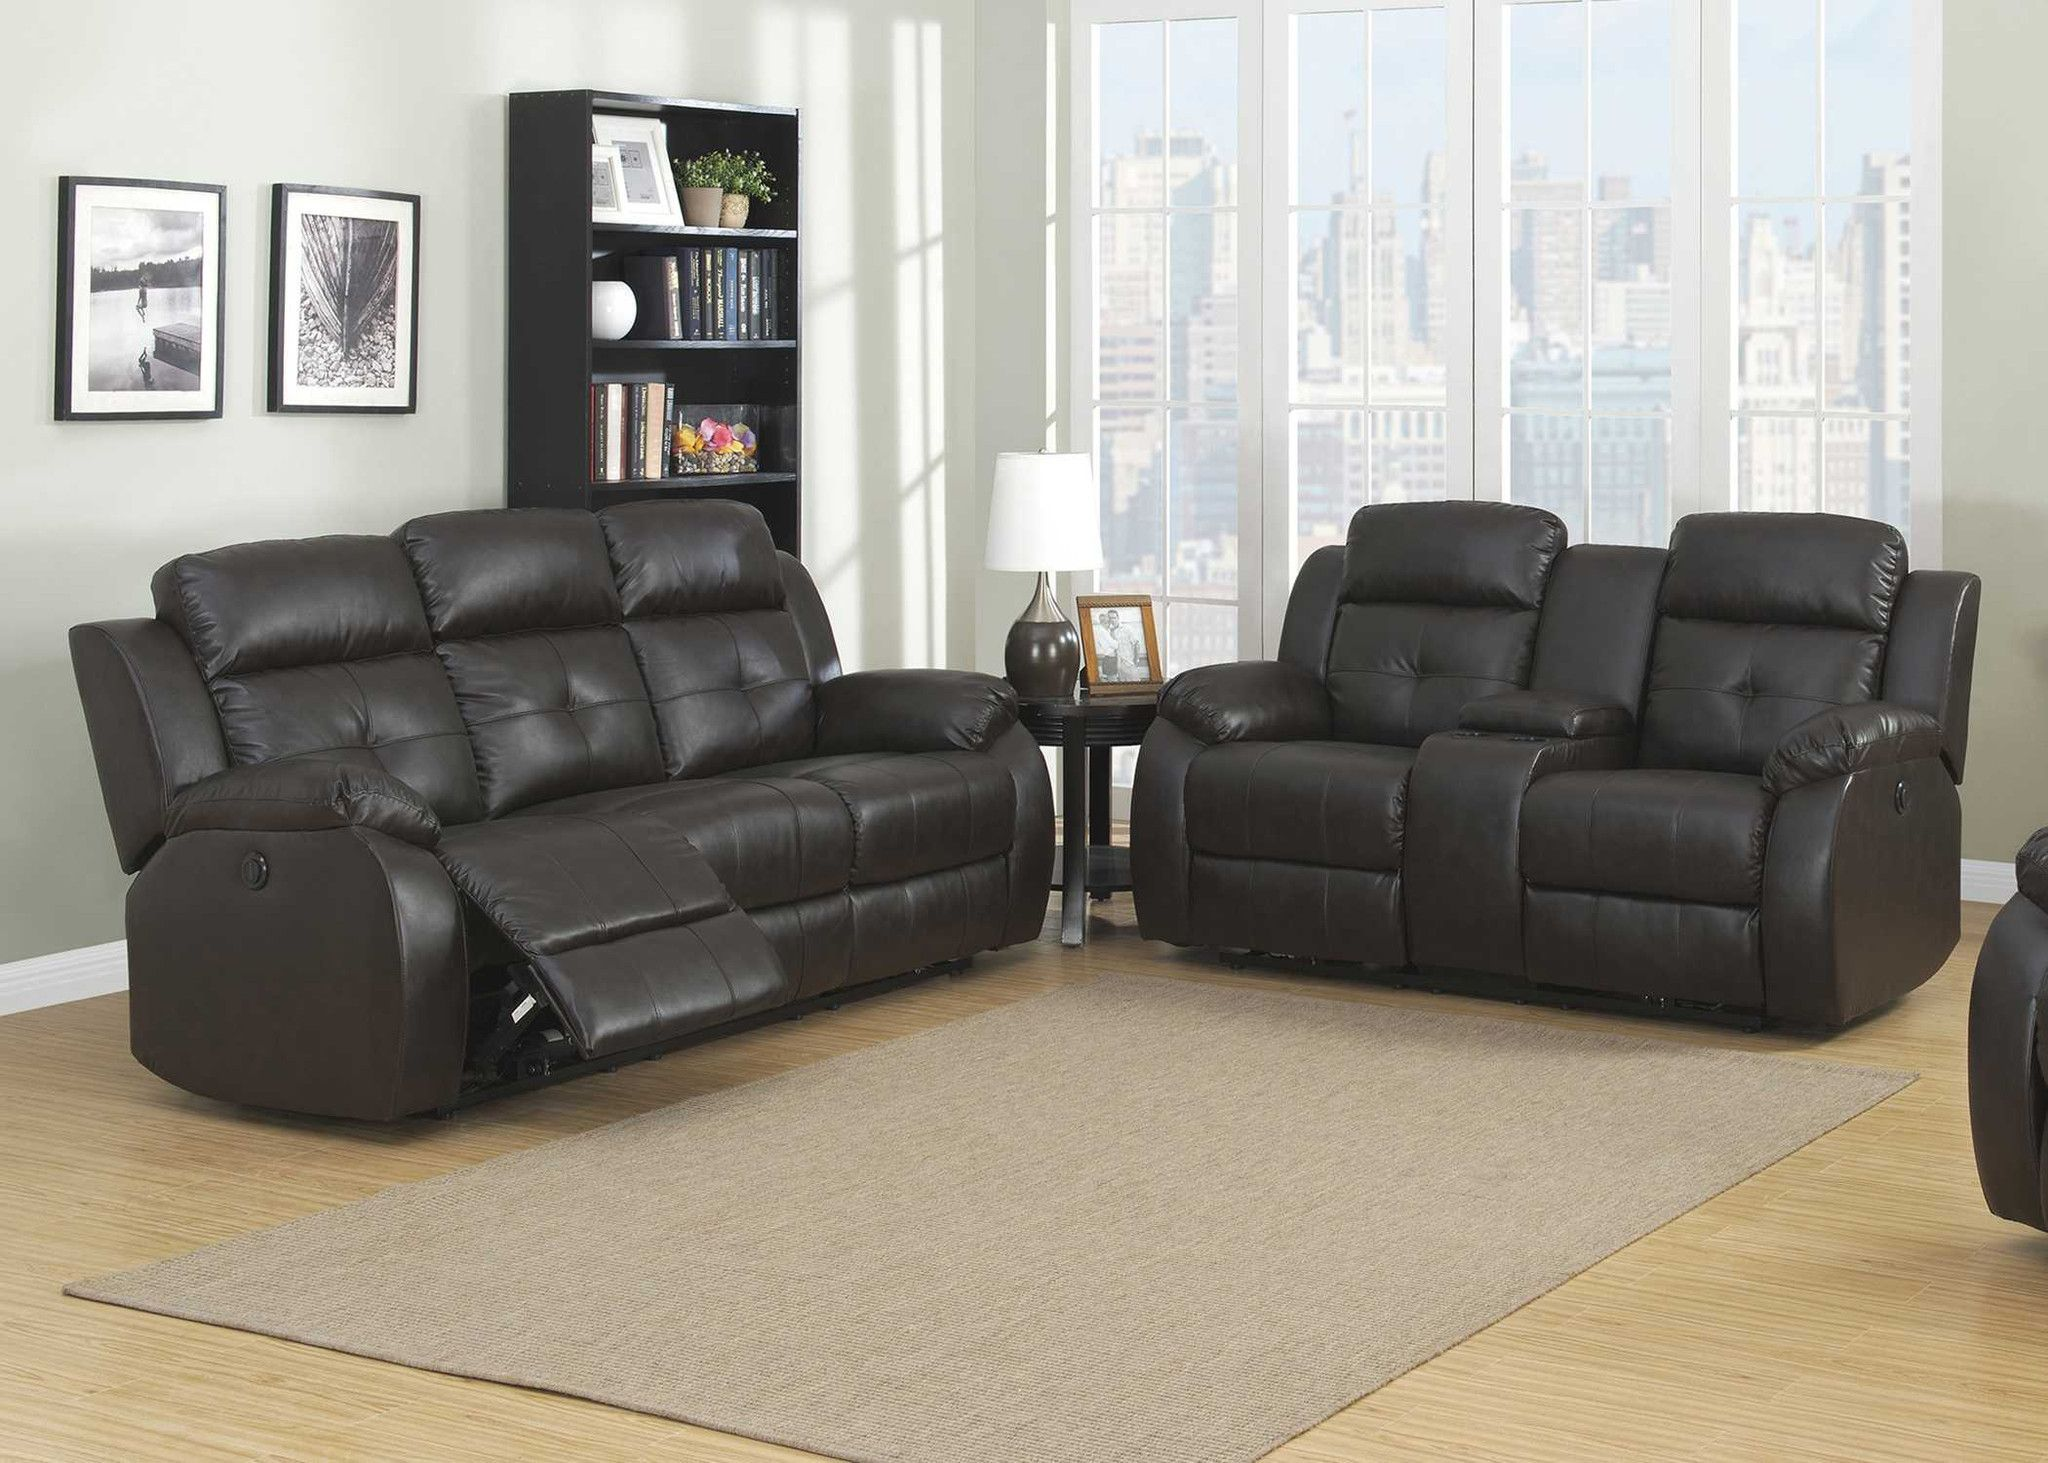 Troy power 2 piece transitional reclining living room set